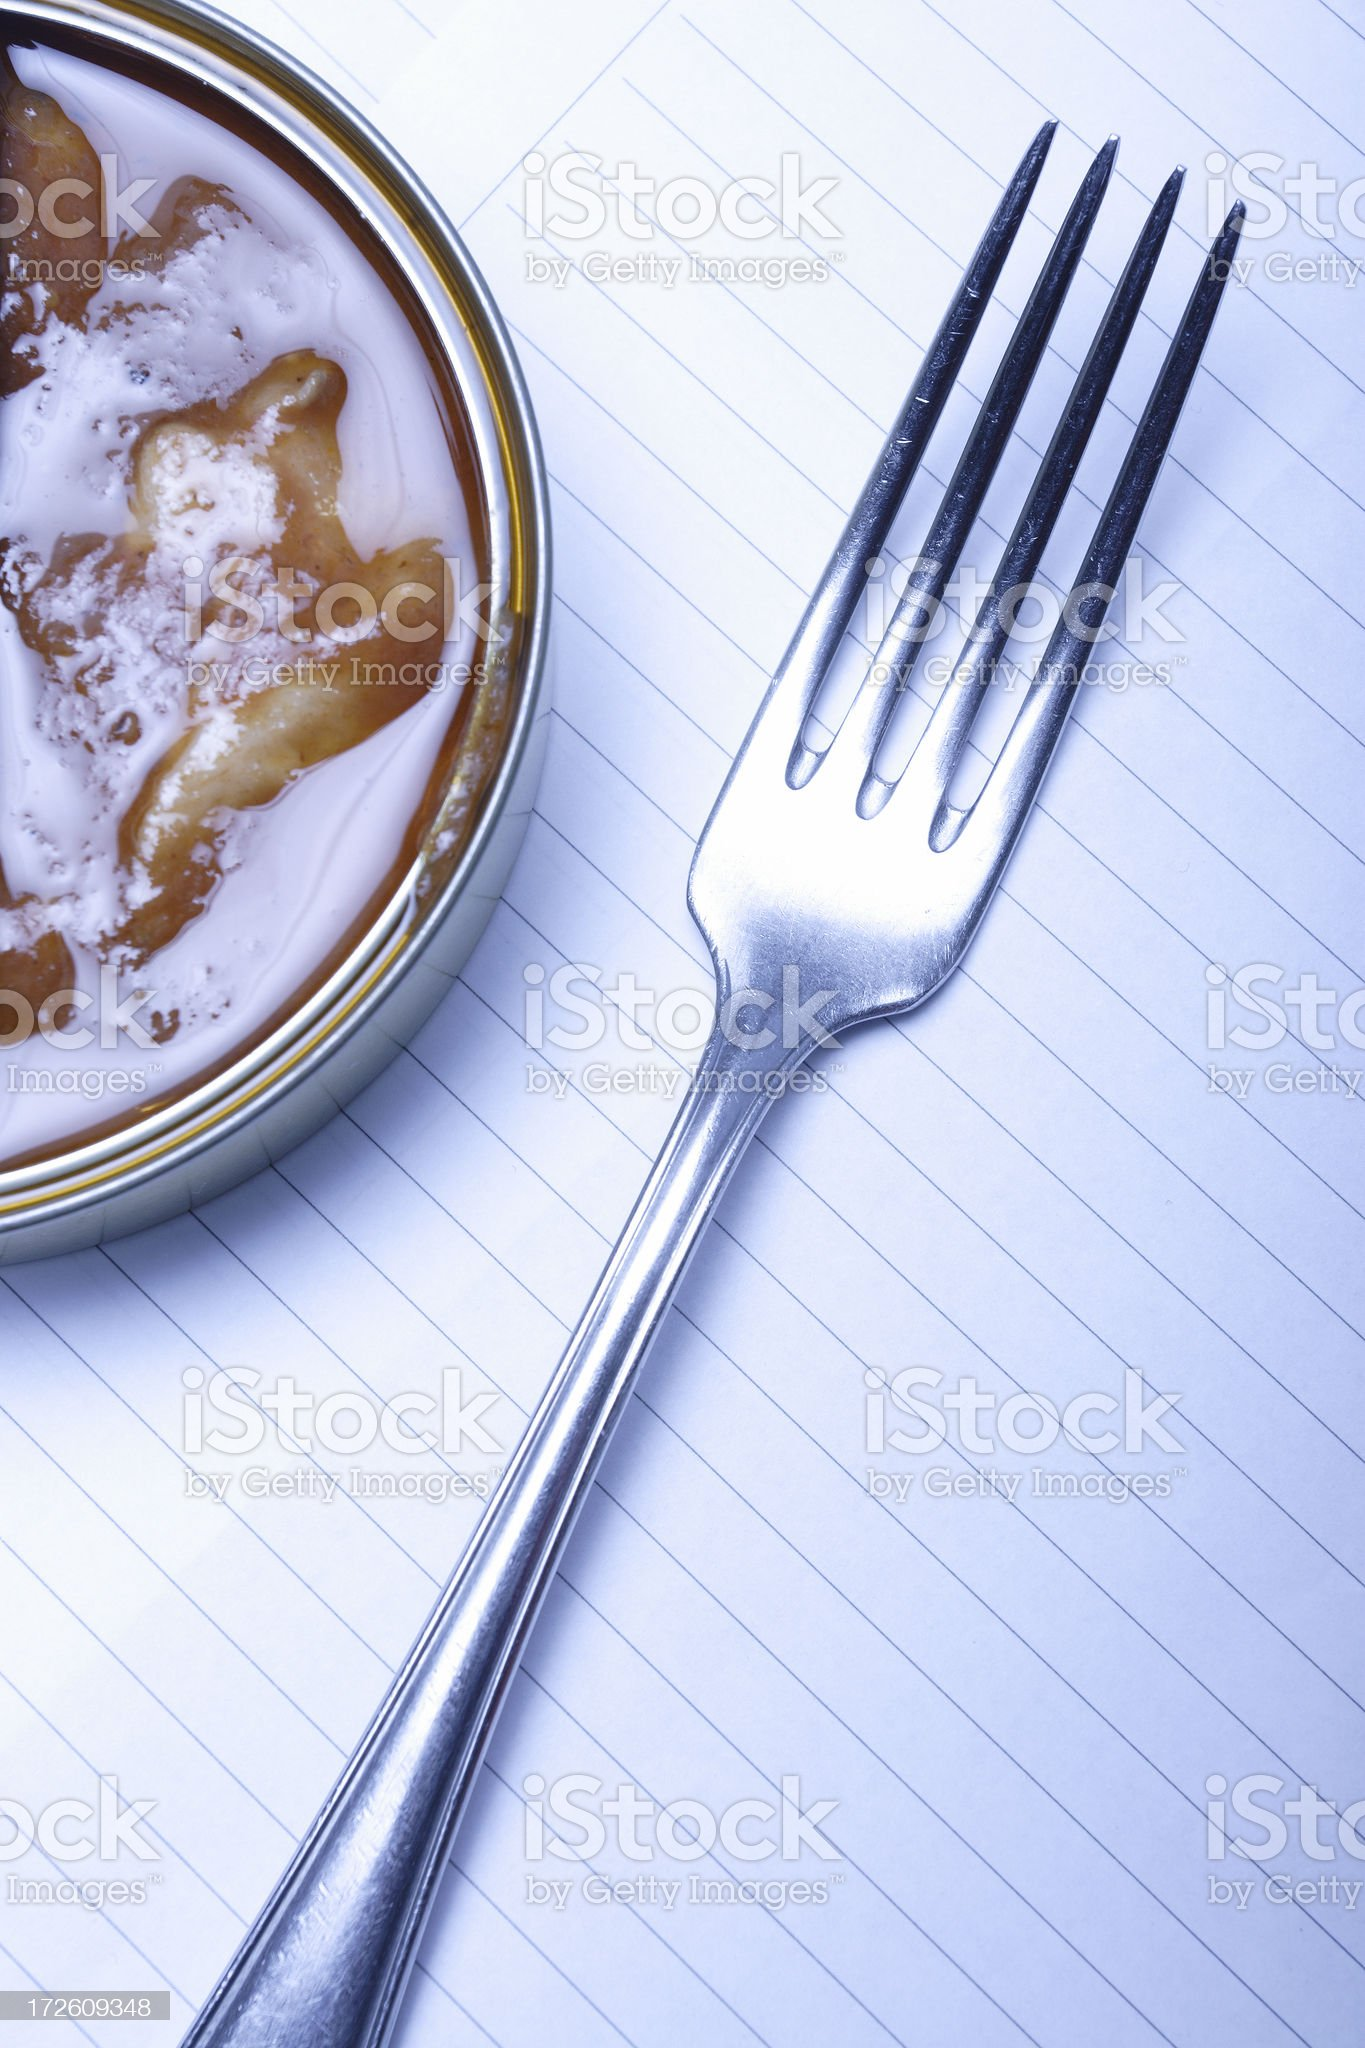 There is something fishy here royalty-free stock photo